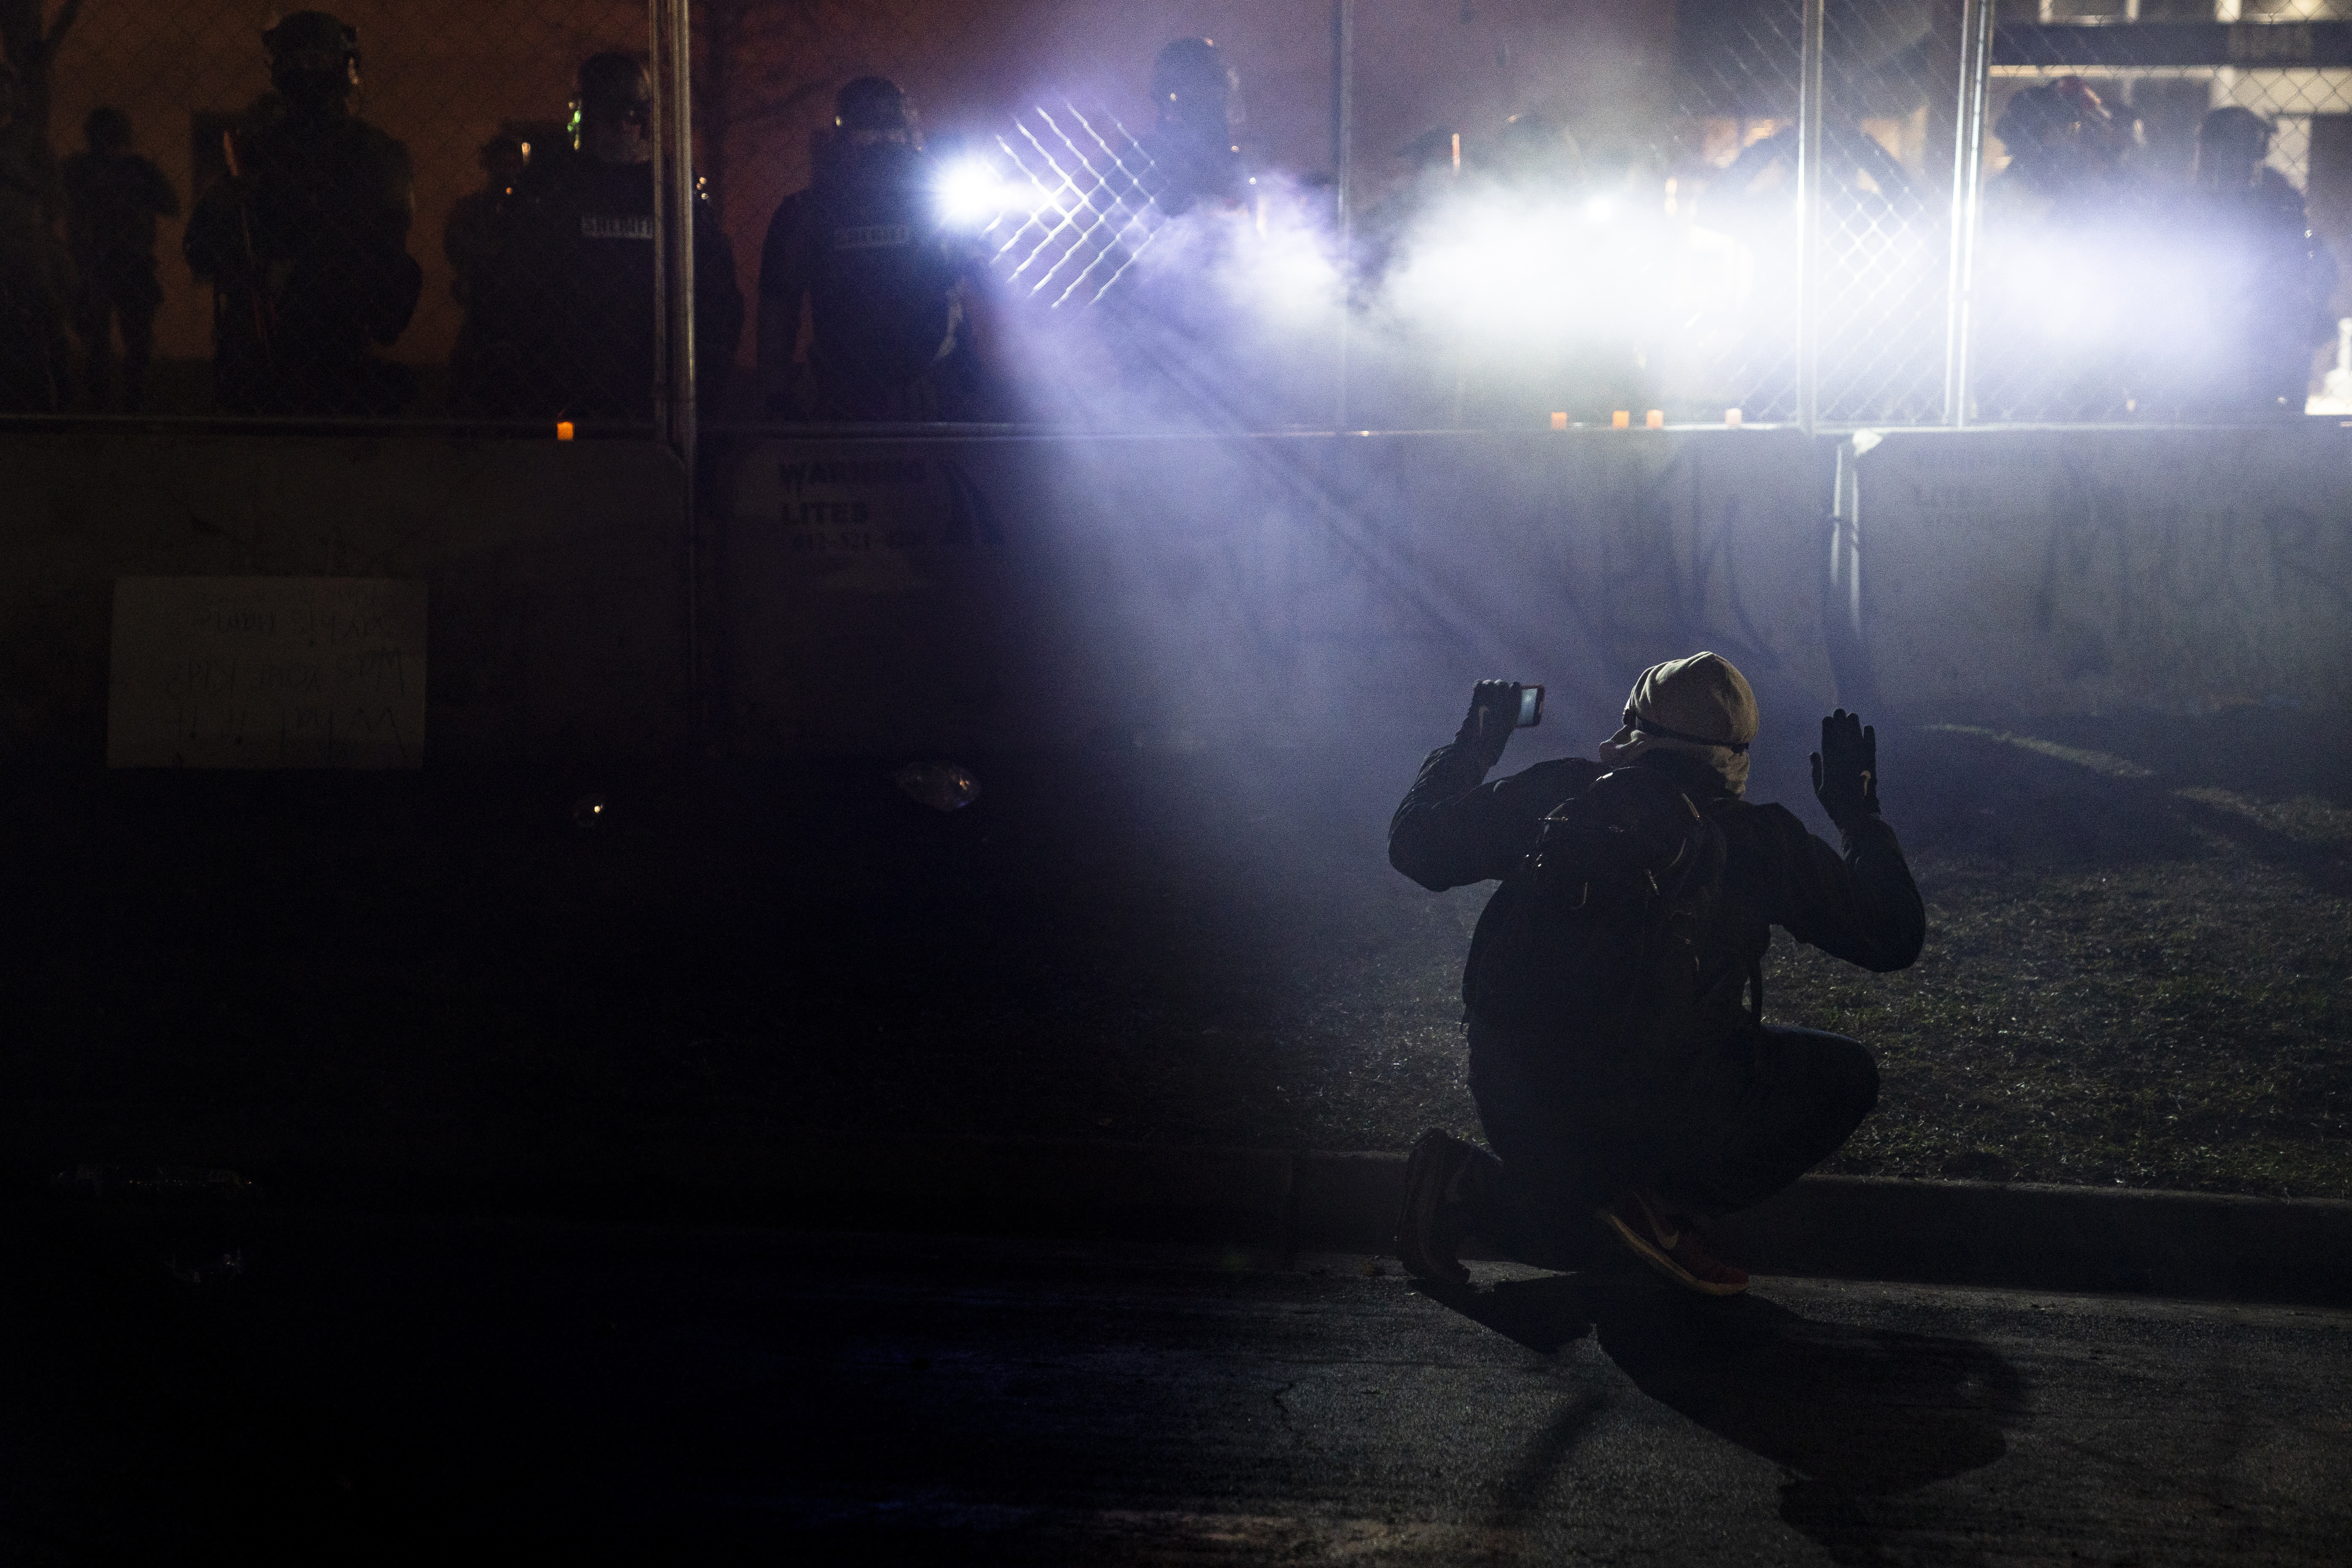 Police shine lights on a demonstrator with raised hands during a protest outside the Brooklyn Center Police Department on in Brooklyn Center, Minn., on this April 14, 2021.